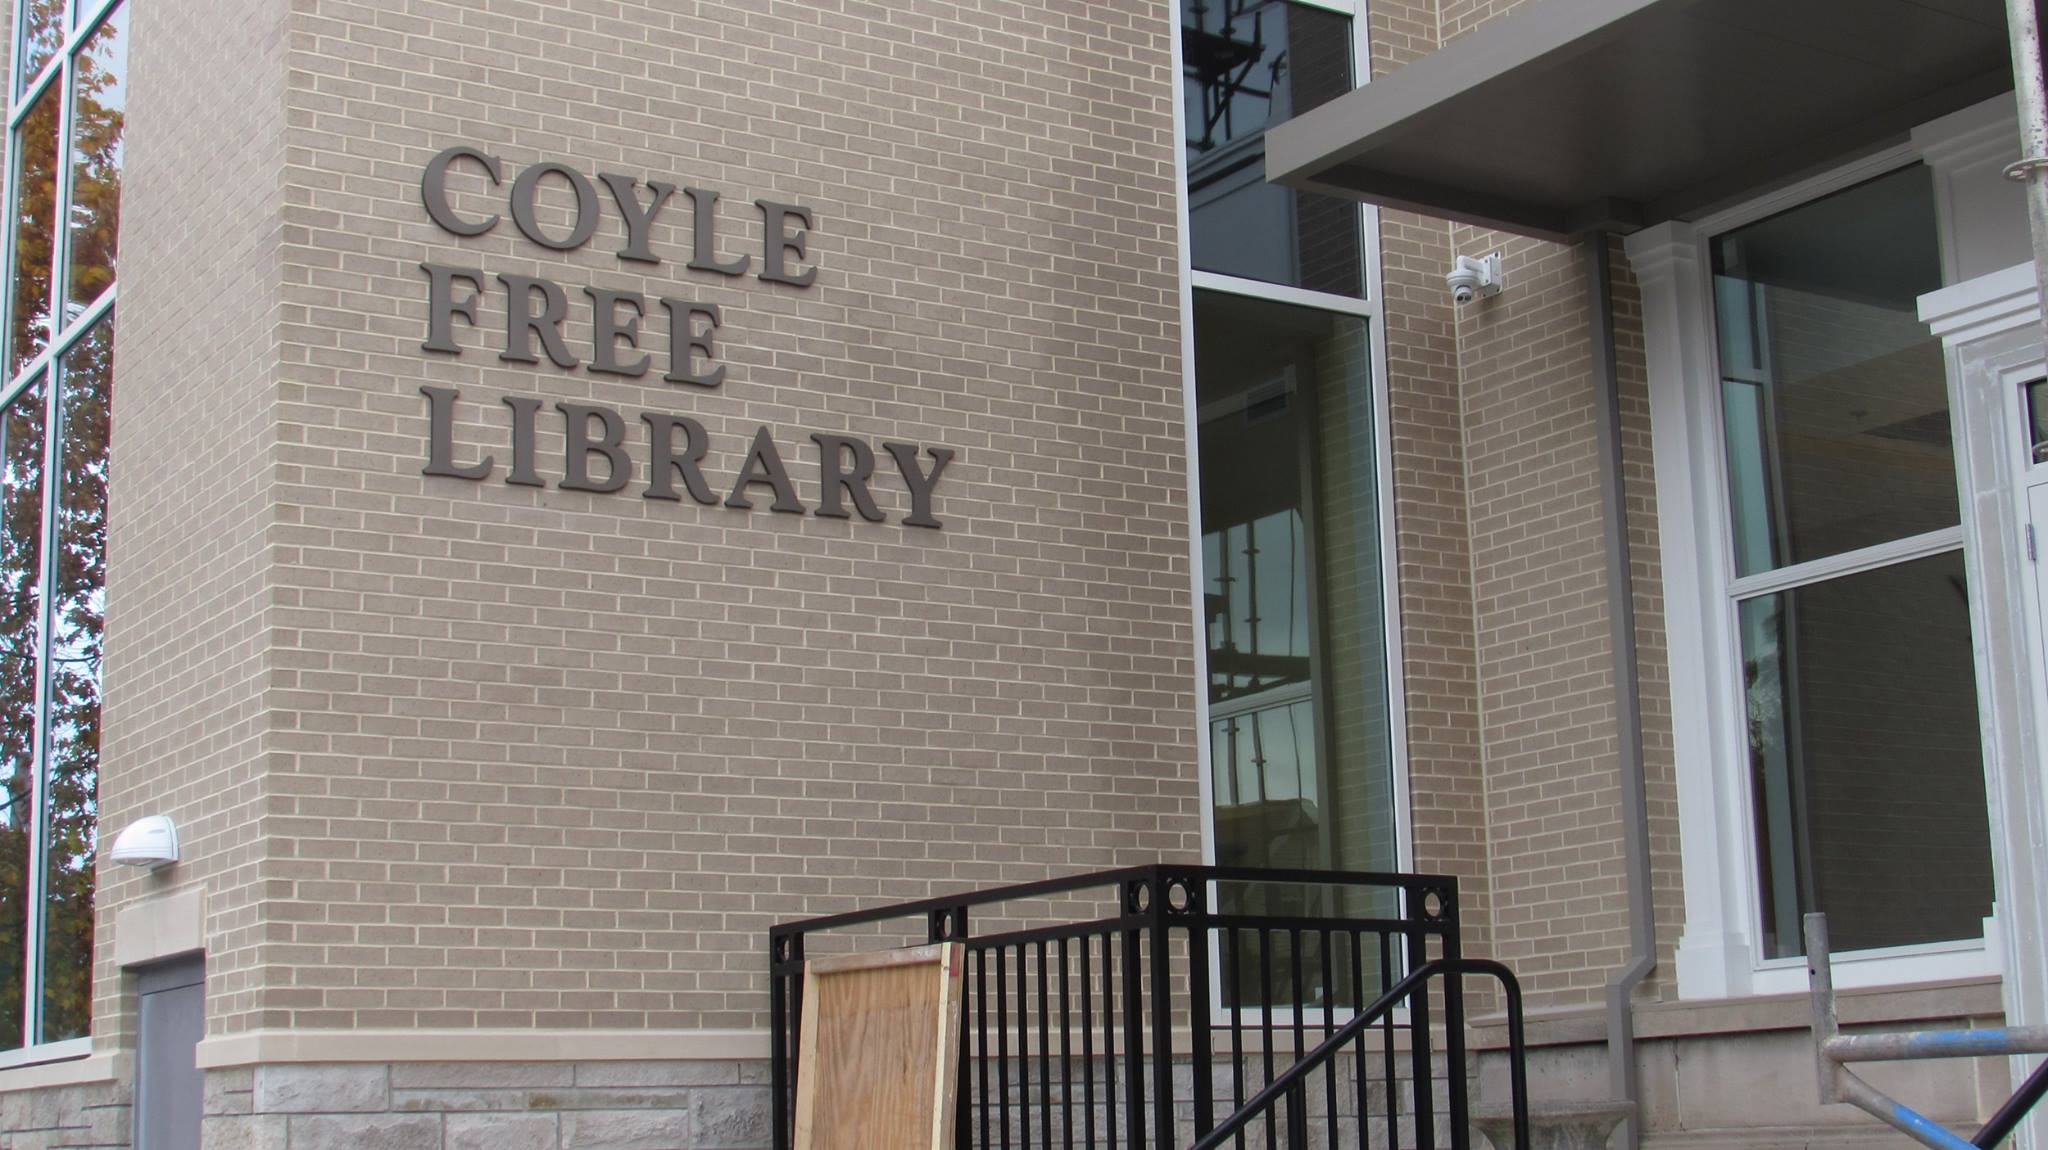 Coyle Free Library